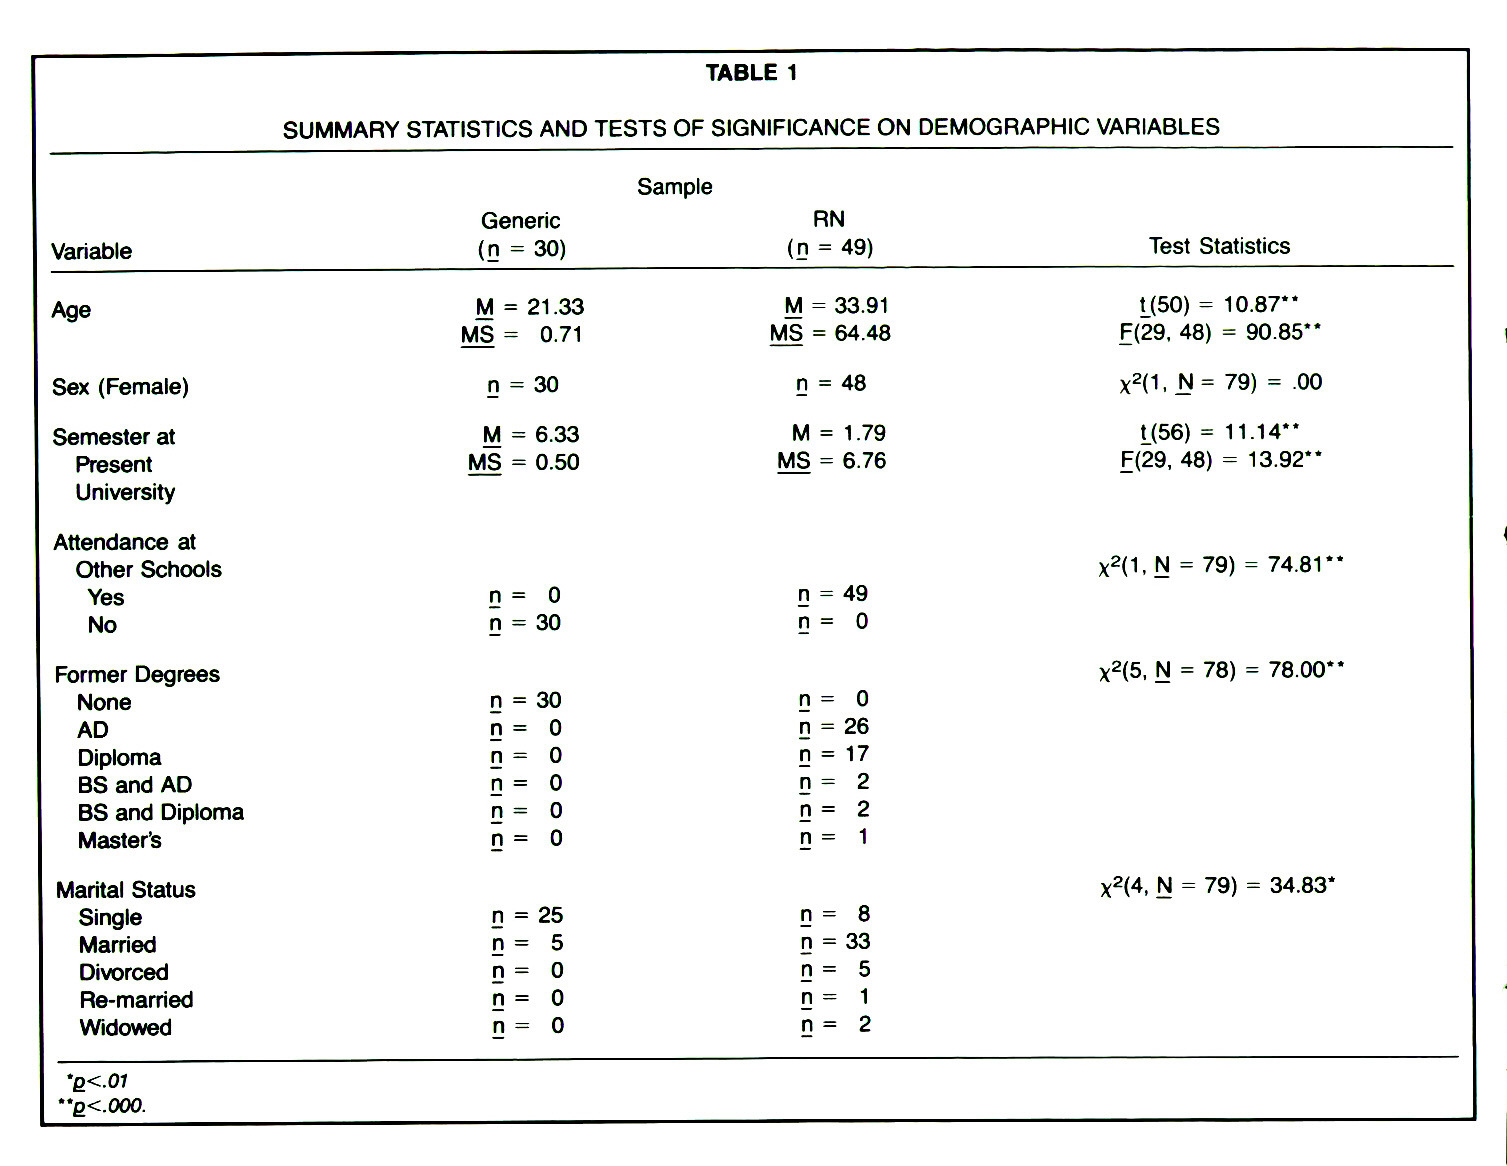 TABLE 1SUMMARY STATISTICS AND TESTS OF SIGNIFICANCE ON DEMOGRAPHIC VARIABLES